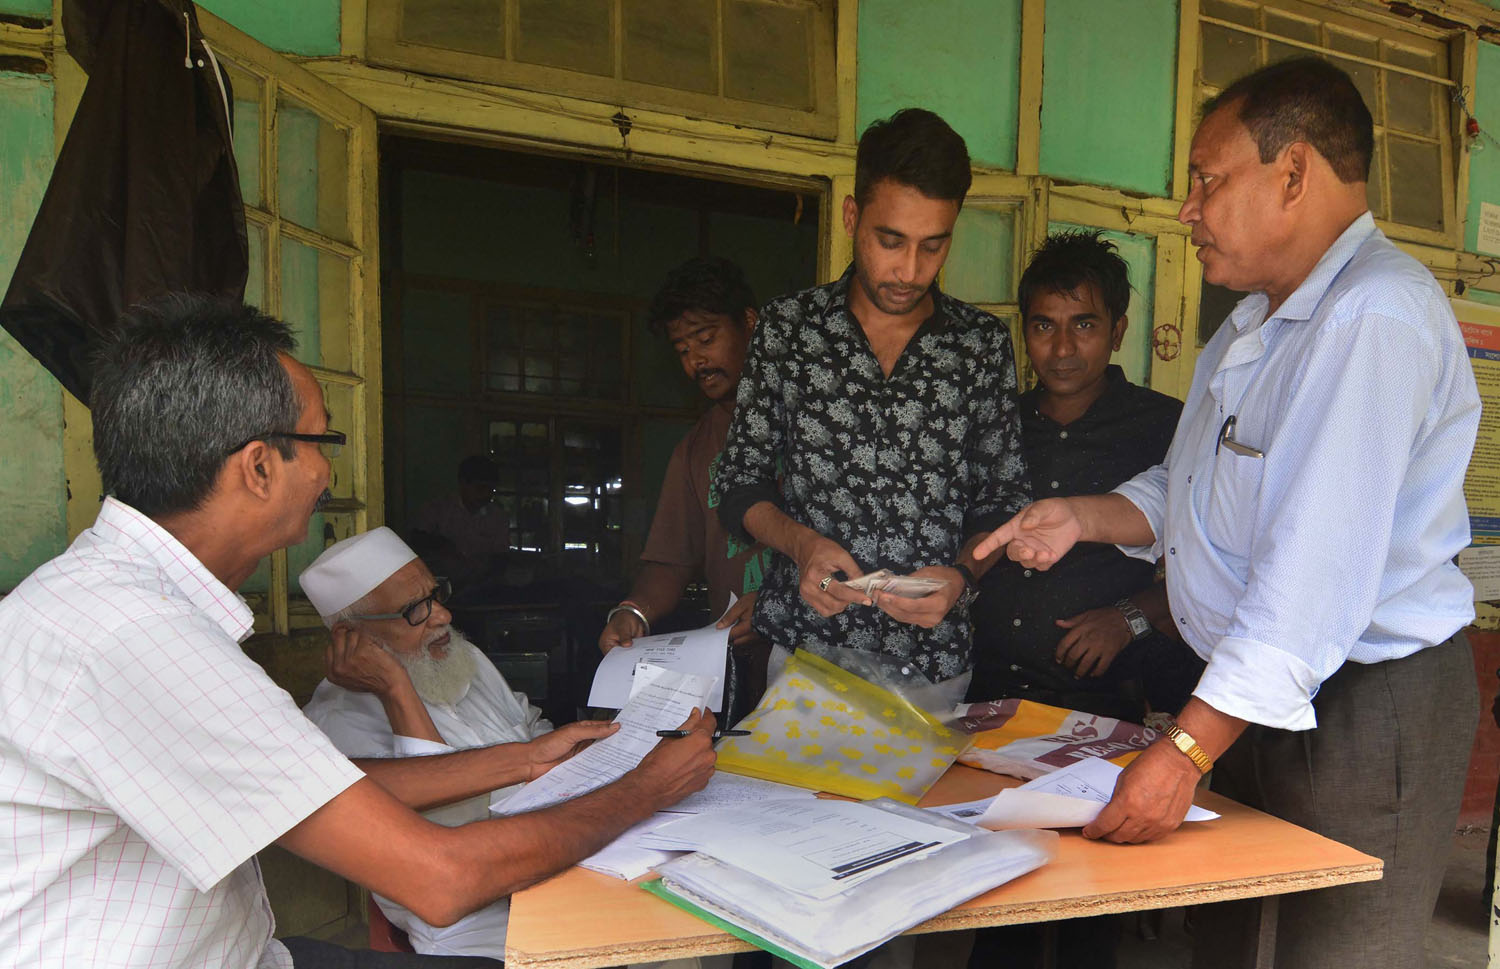 People undergo a verification process for the National Register of Citizens in Guwahati, Assam, on Wednesday, June 26, 2019. The normalization of mob violence against minorities can only be a preliminary to the the real substance of a Hindu rashtra, namely the legitimization of formal discrimination